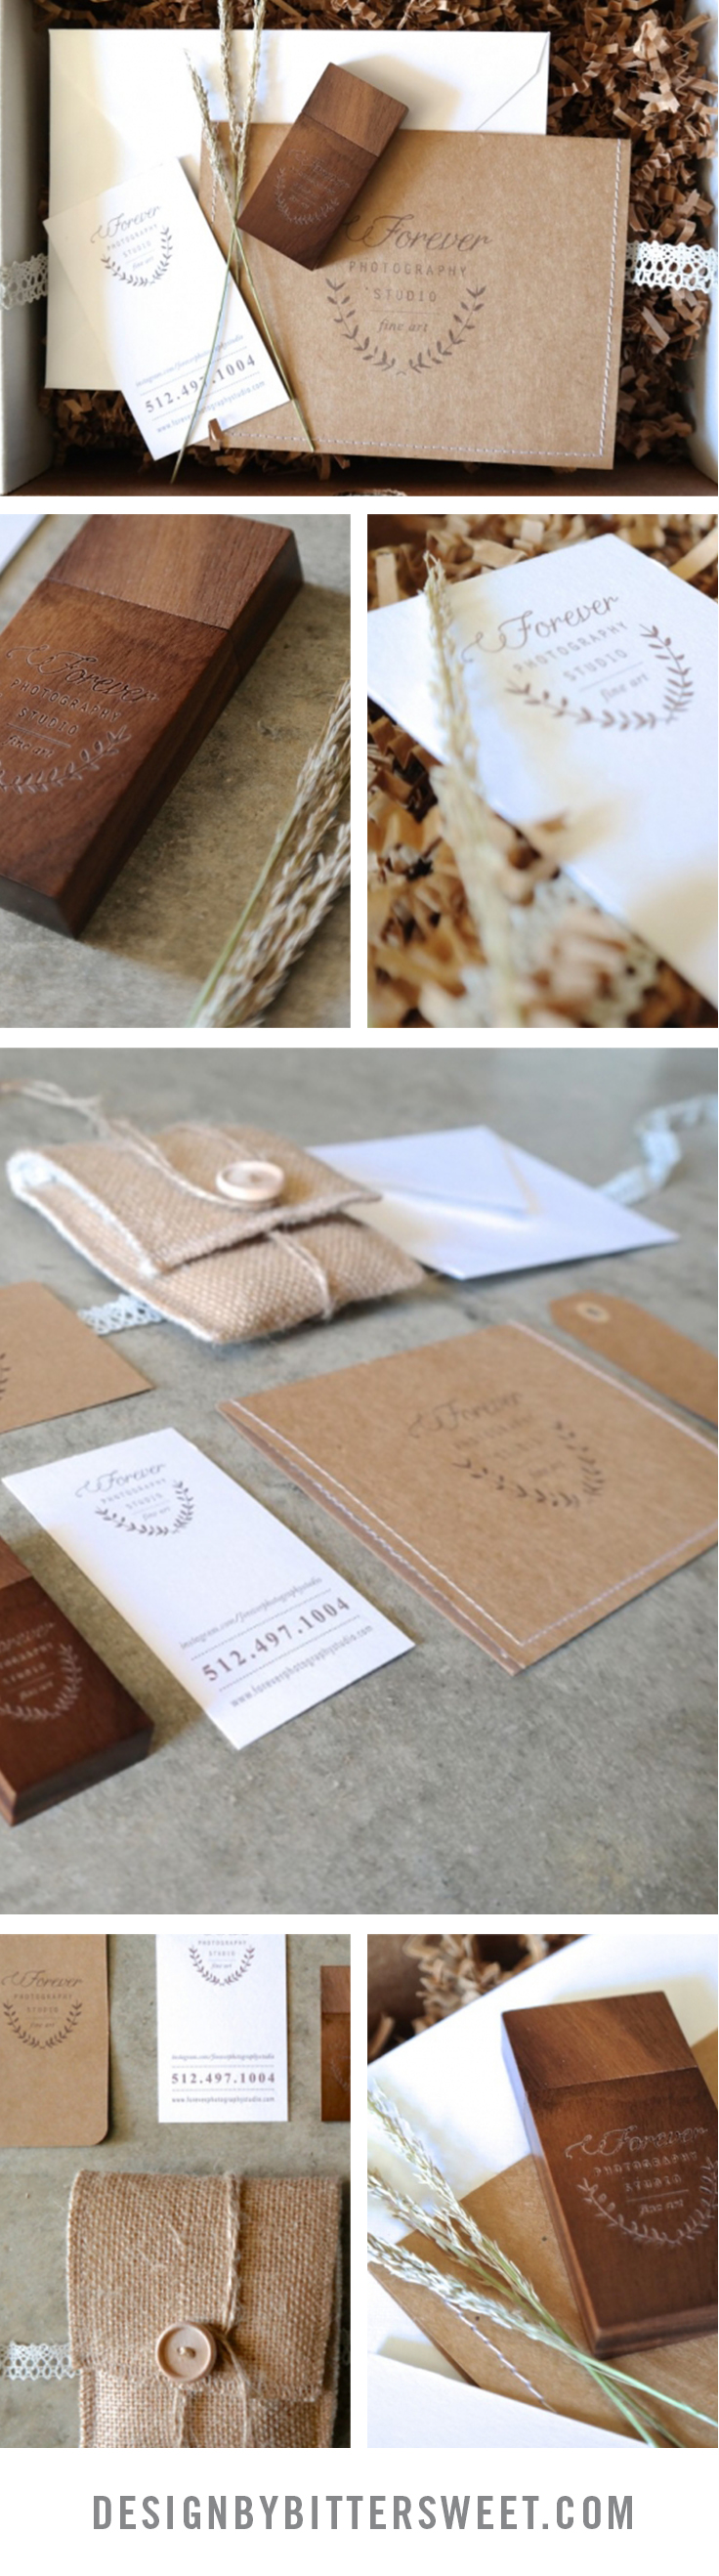 Boutique photographer packaging ideas.